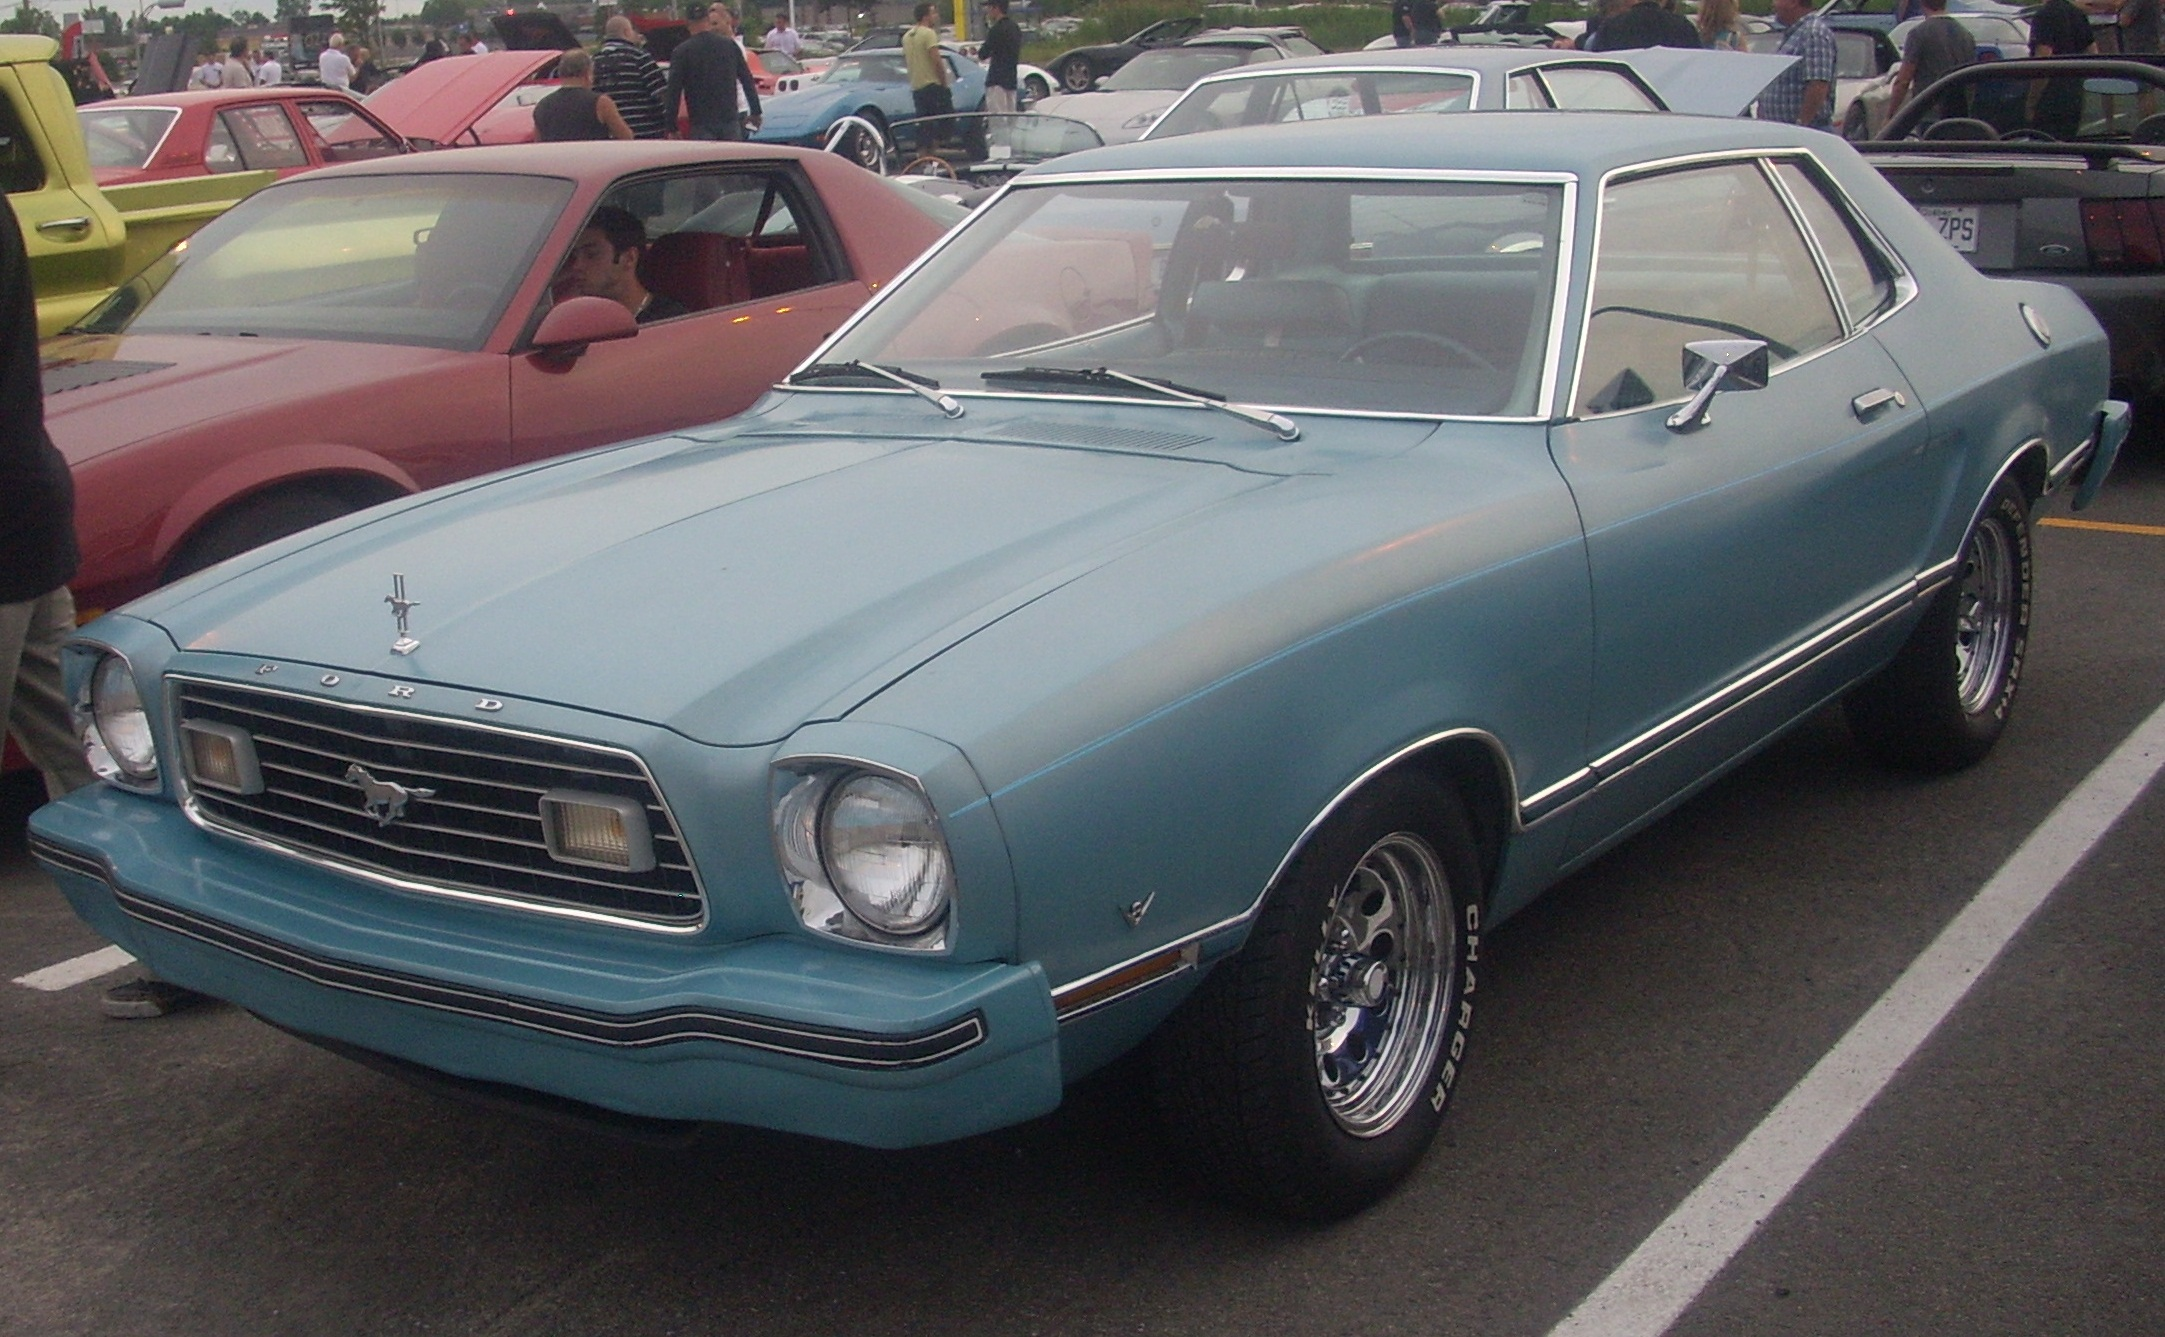 Ford Mustang Second